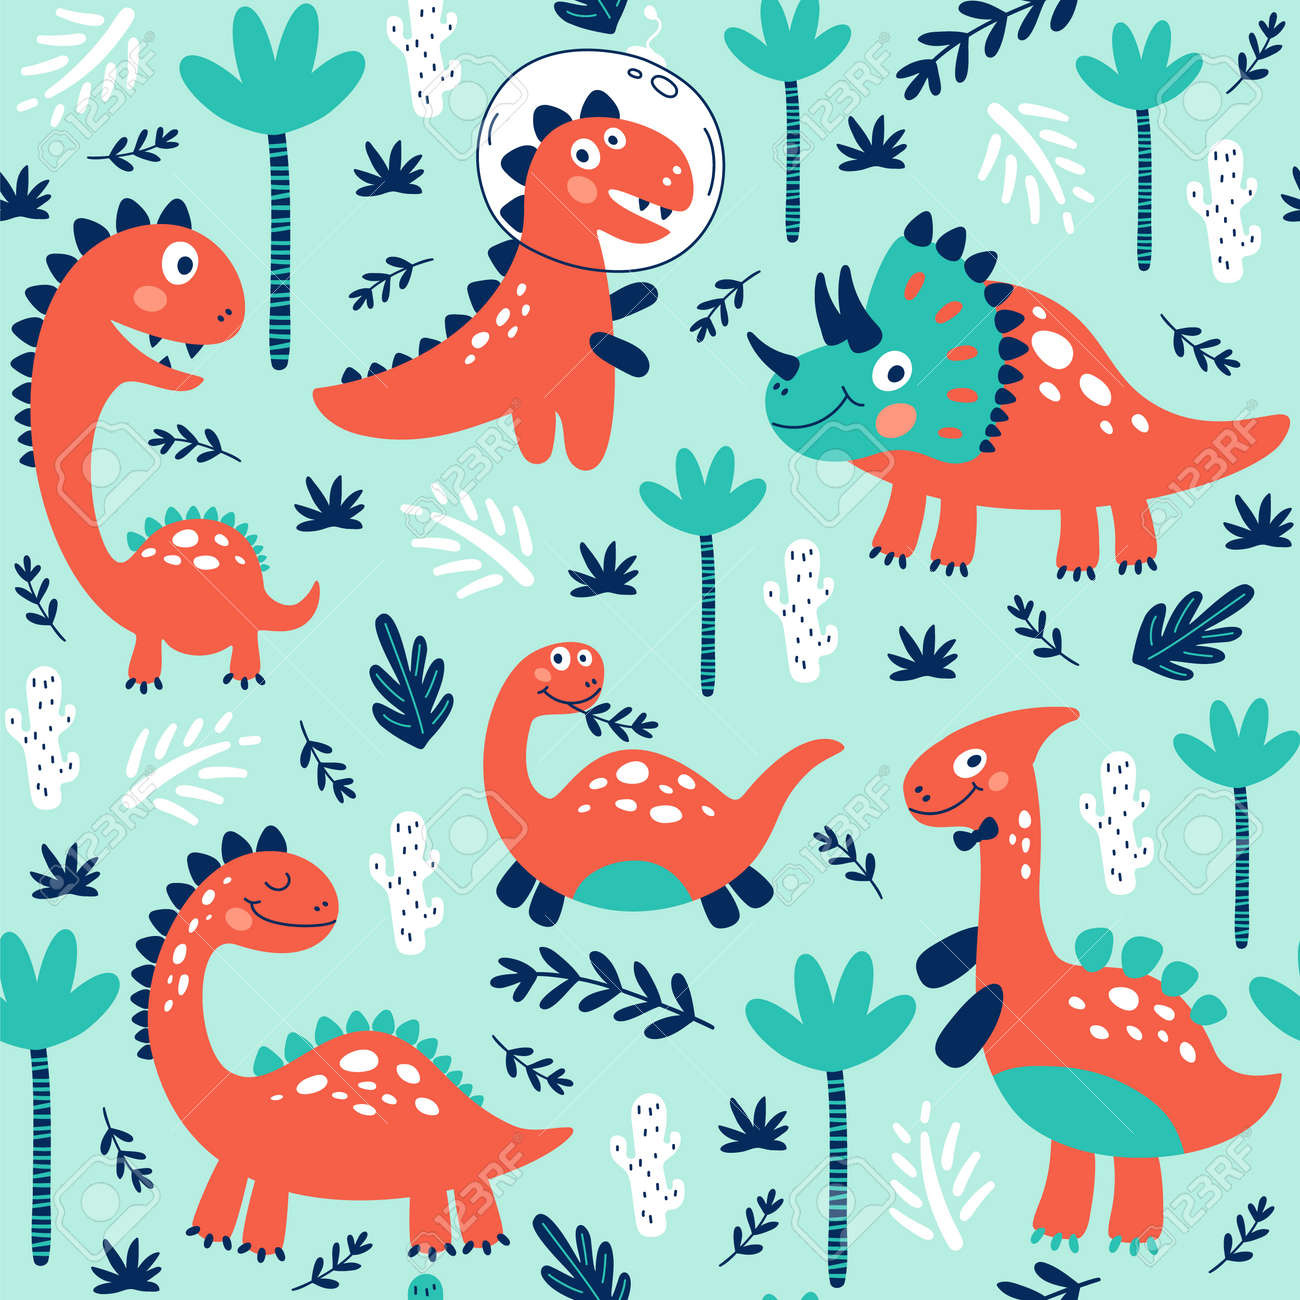 Seamless pattern with cute dinosaurs for children print. Vector illustration - 124921502